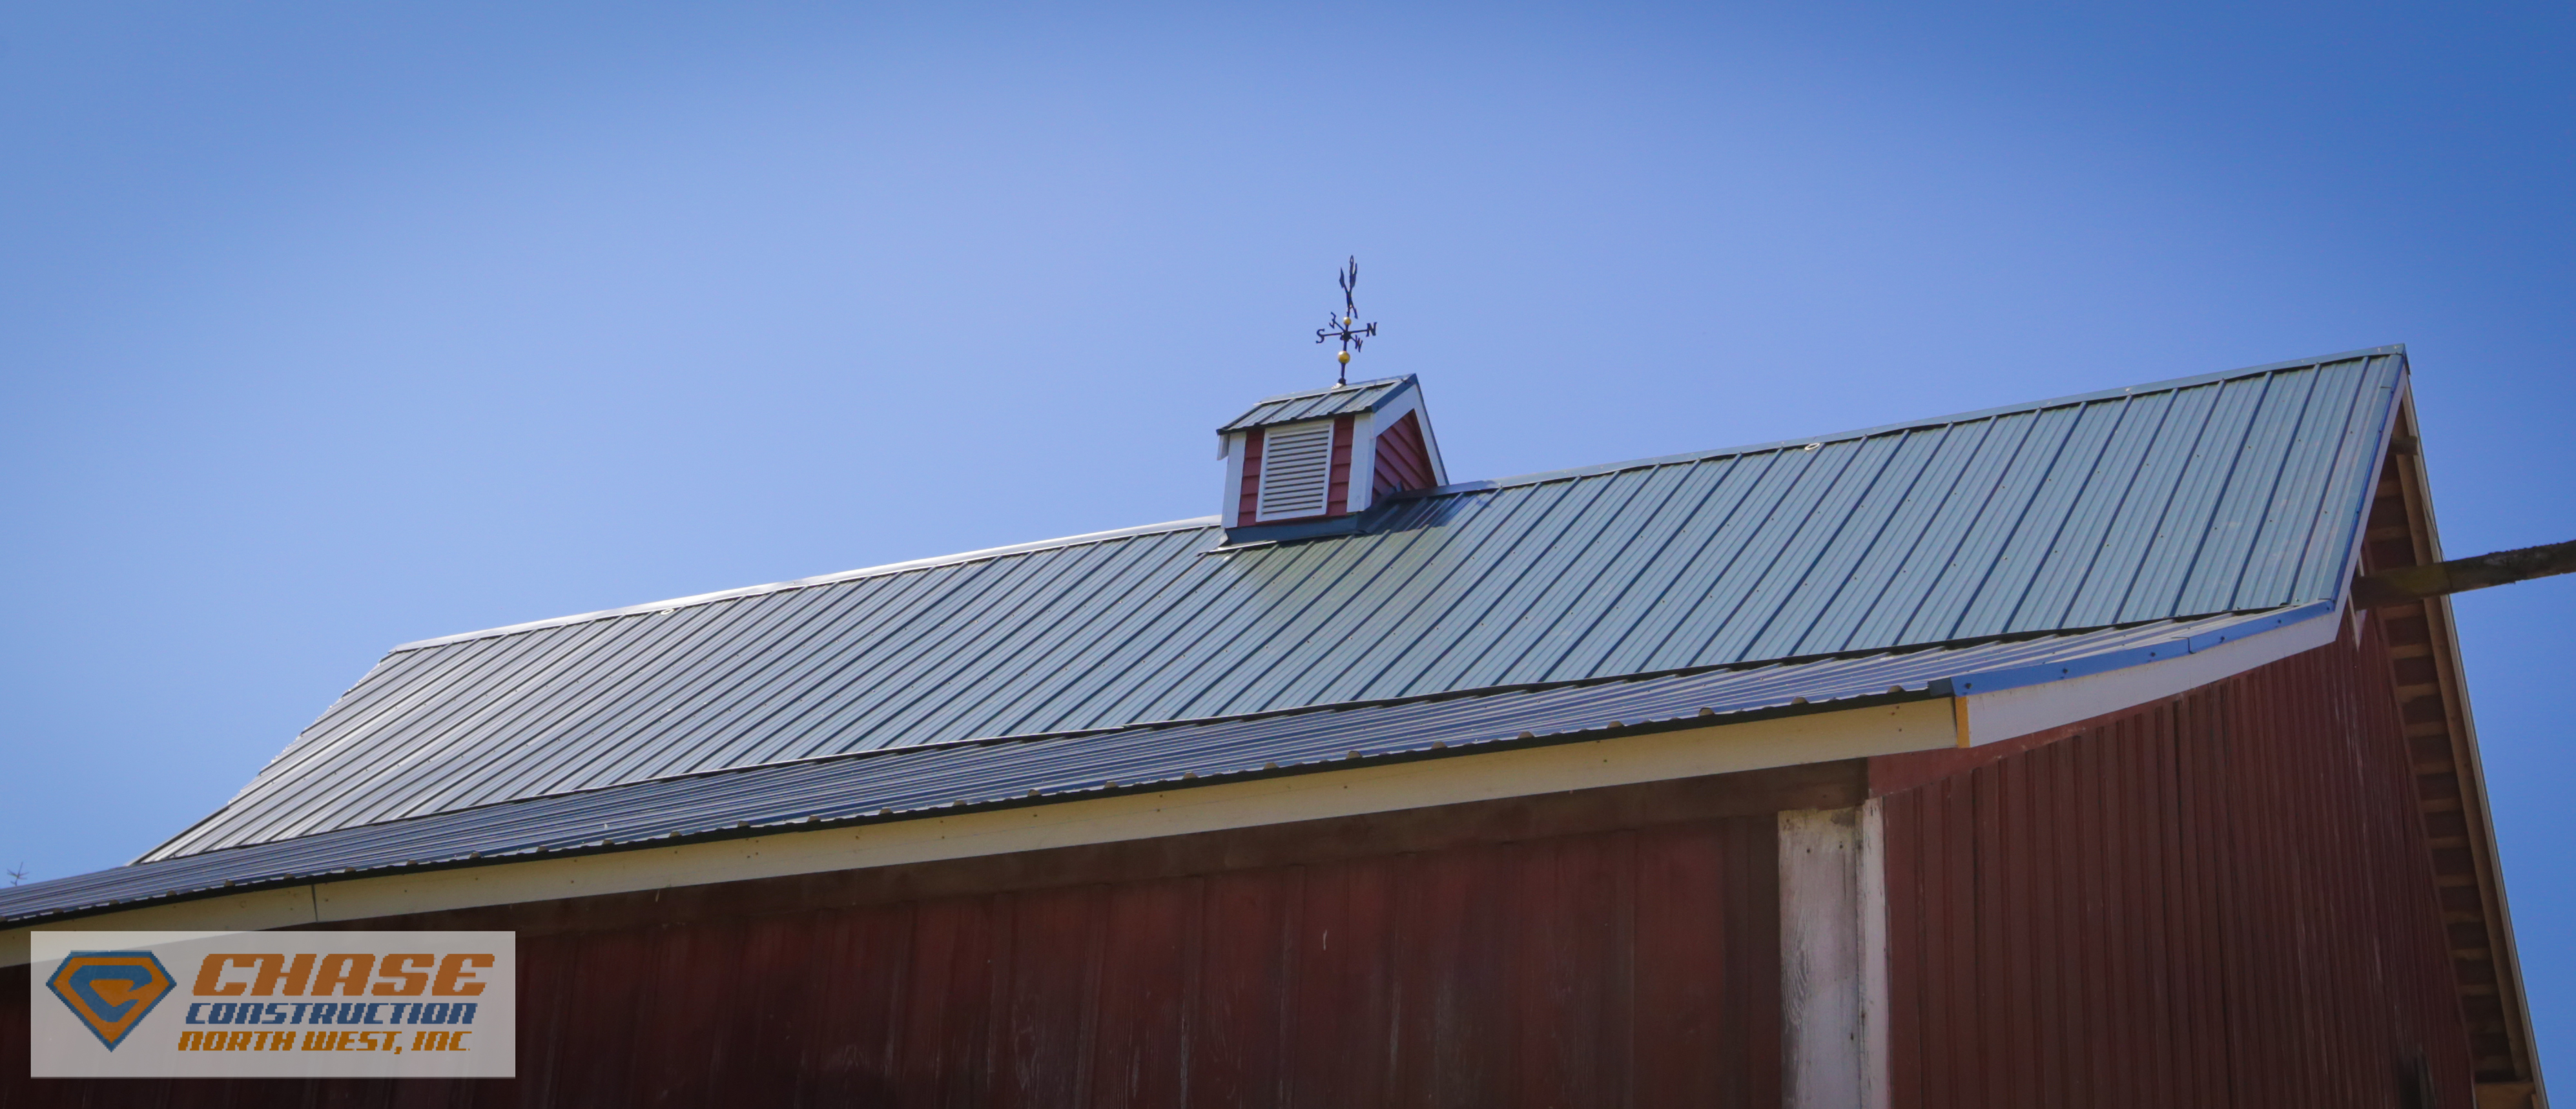 Metal Barn Roof In Edgewood Wa Chase Construction North